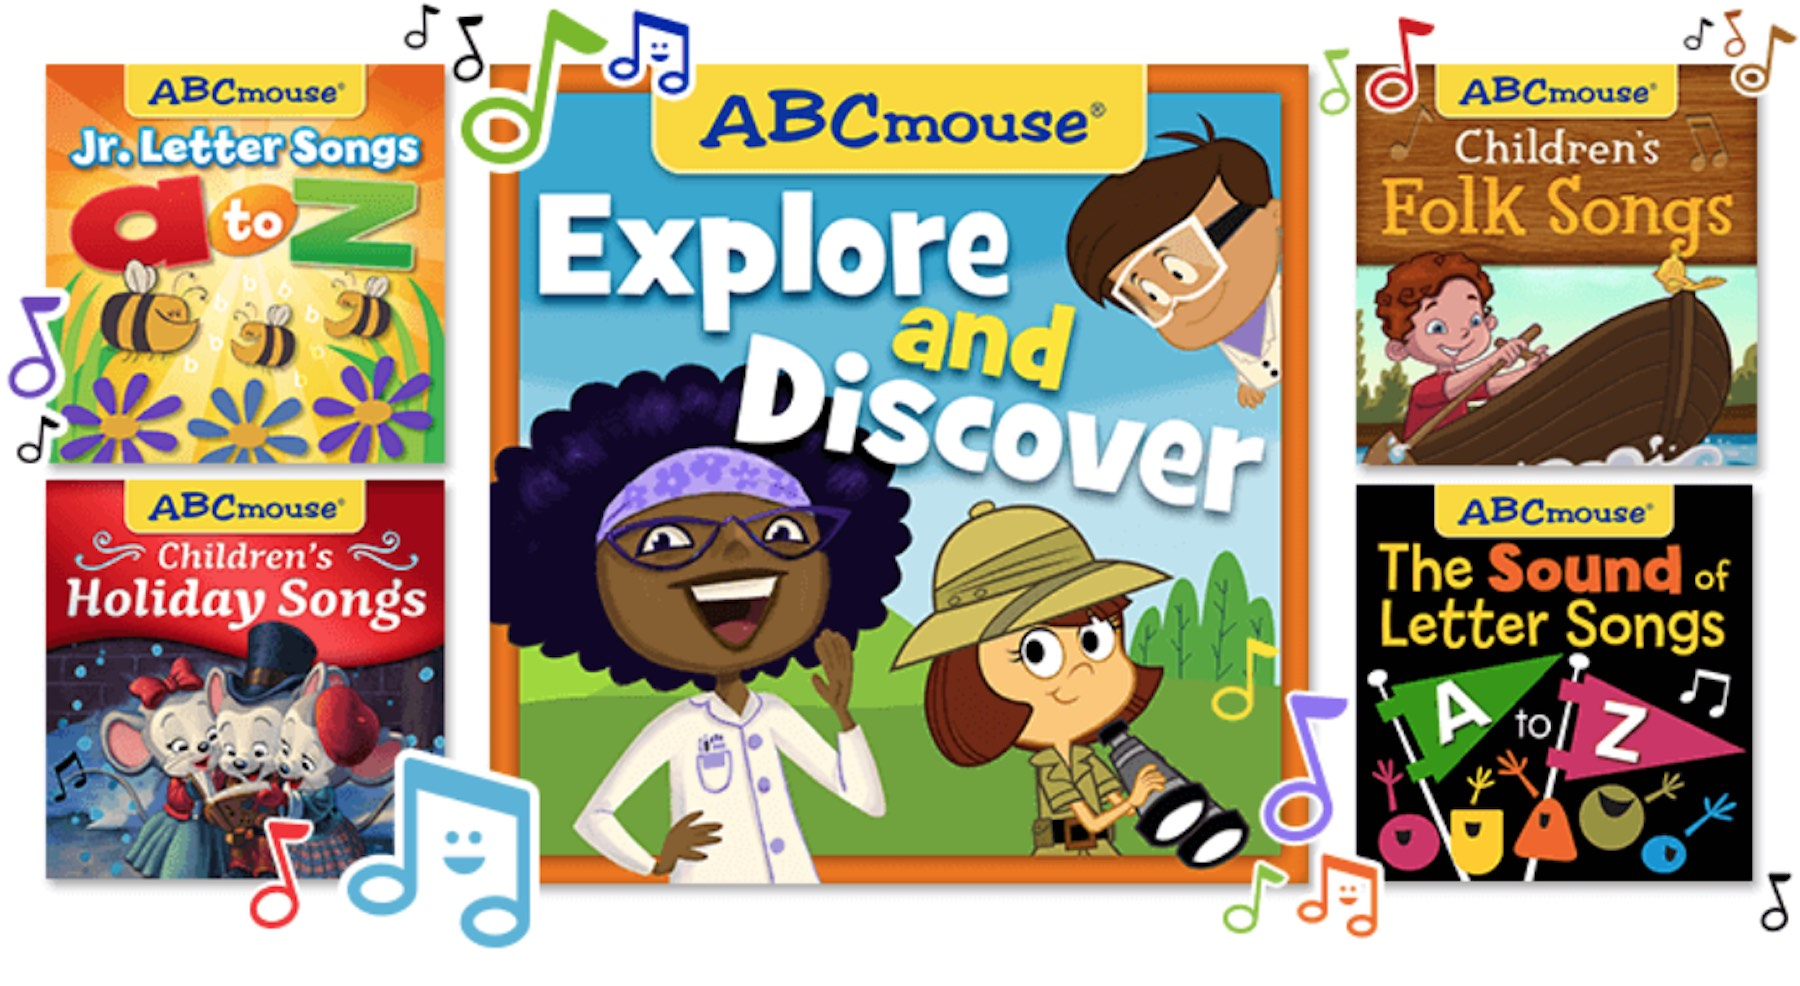 ABCmouse Streaming Songs